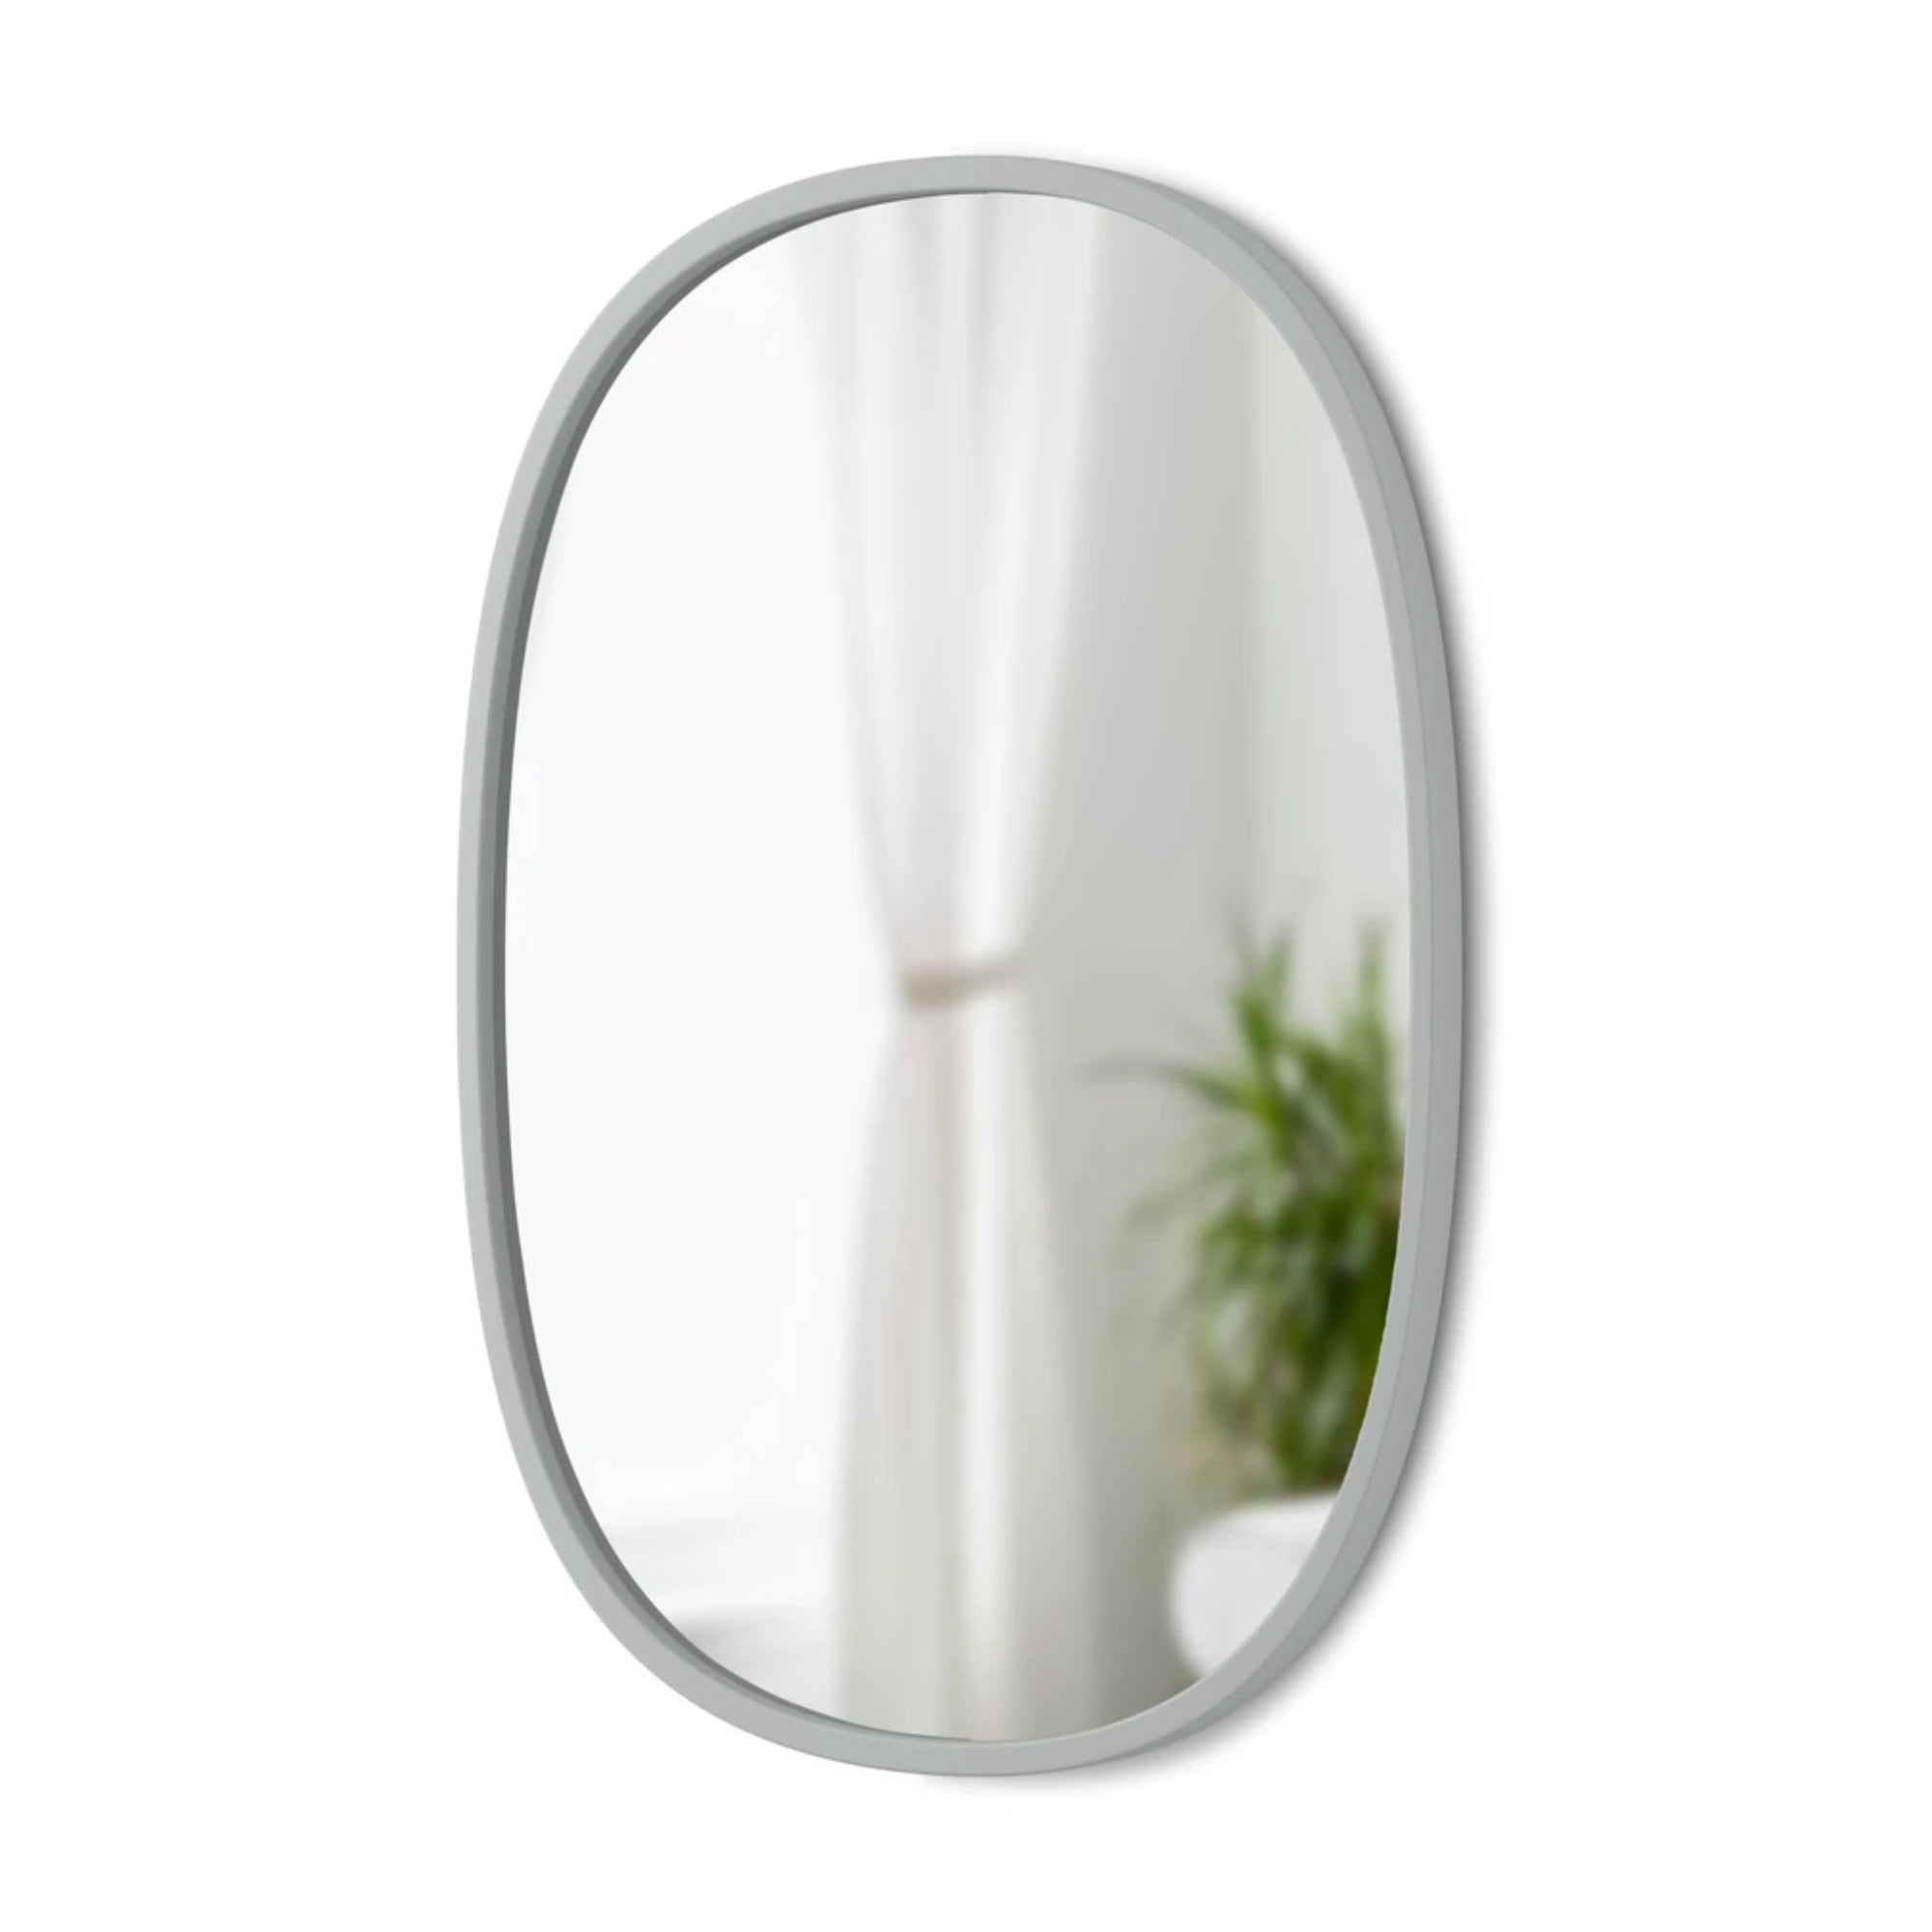 Umbra Hub Oval Mirror 61x91cm , Grey